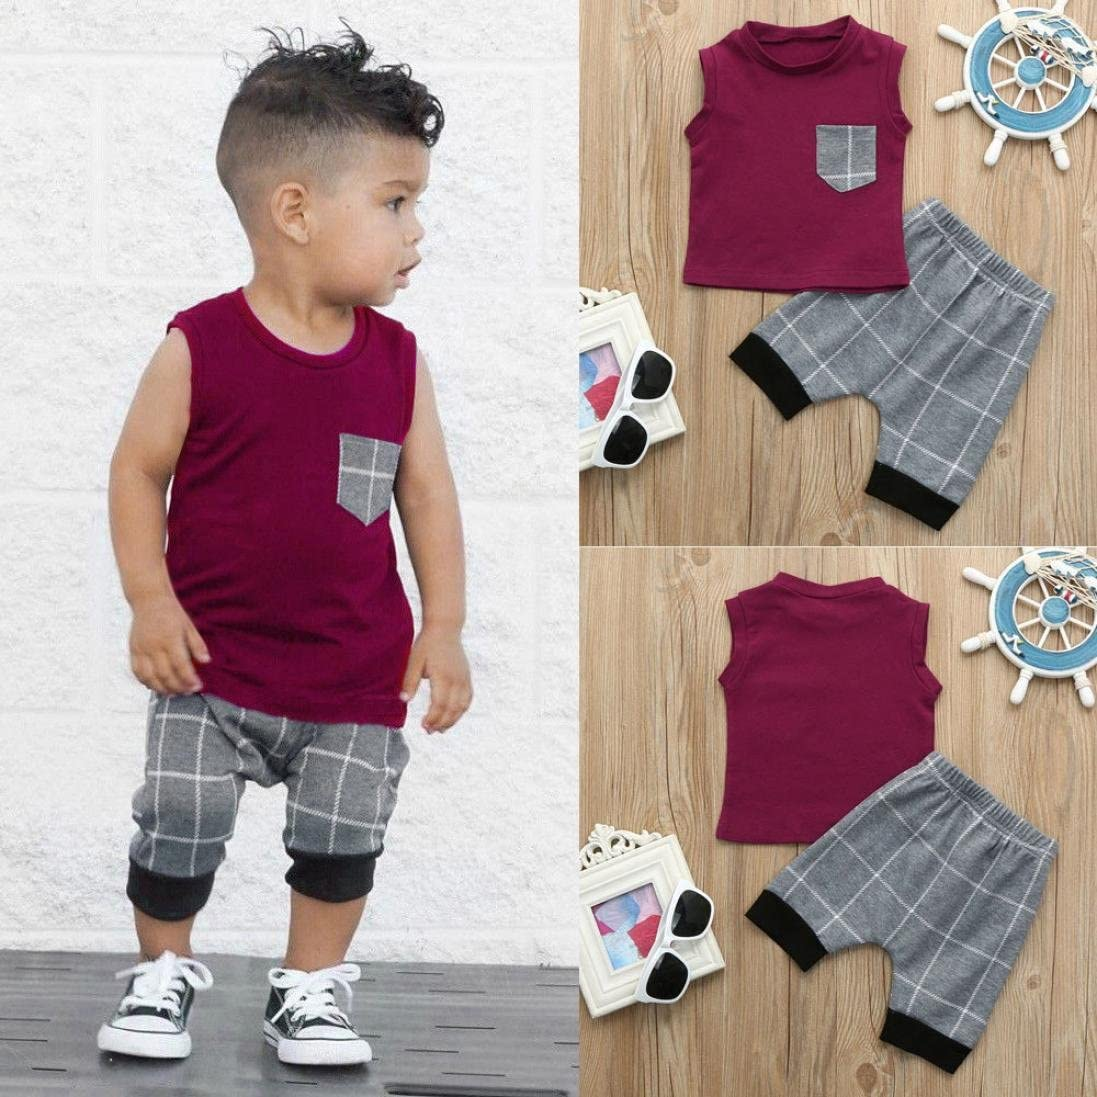 2Pcs Baby Boys Girl Clothes Sets Toddler Plaid Sleeveless Tops T Shirt Vest 3T, Wine Harem Pants Outfits